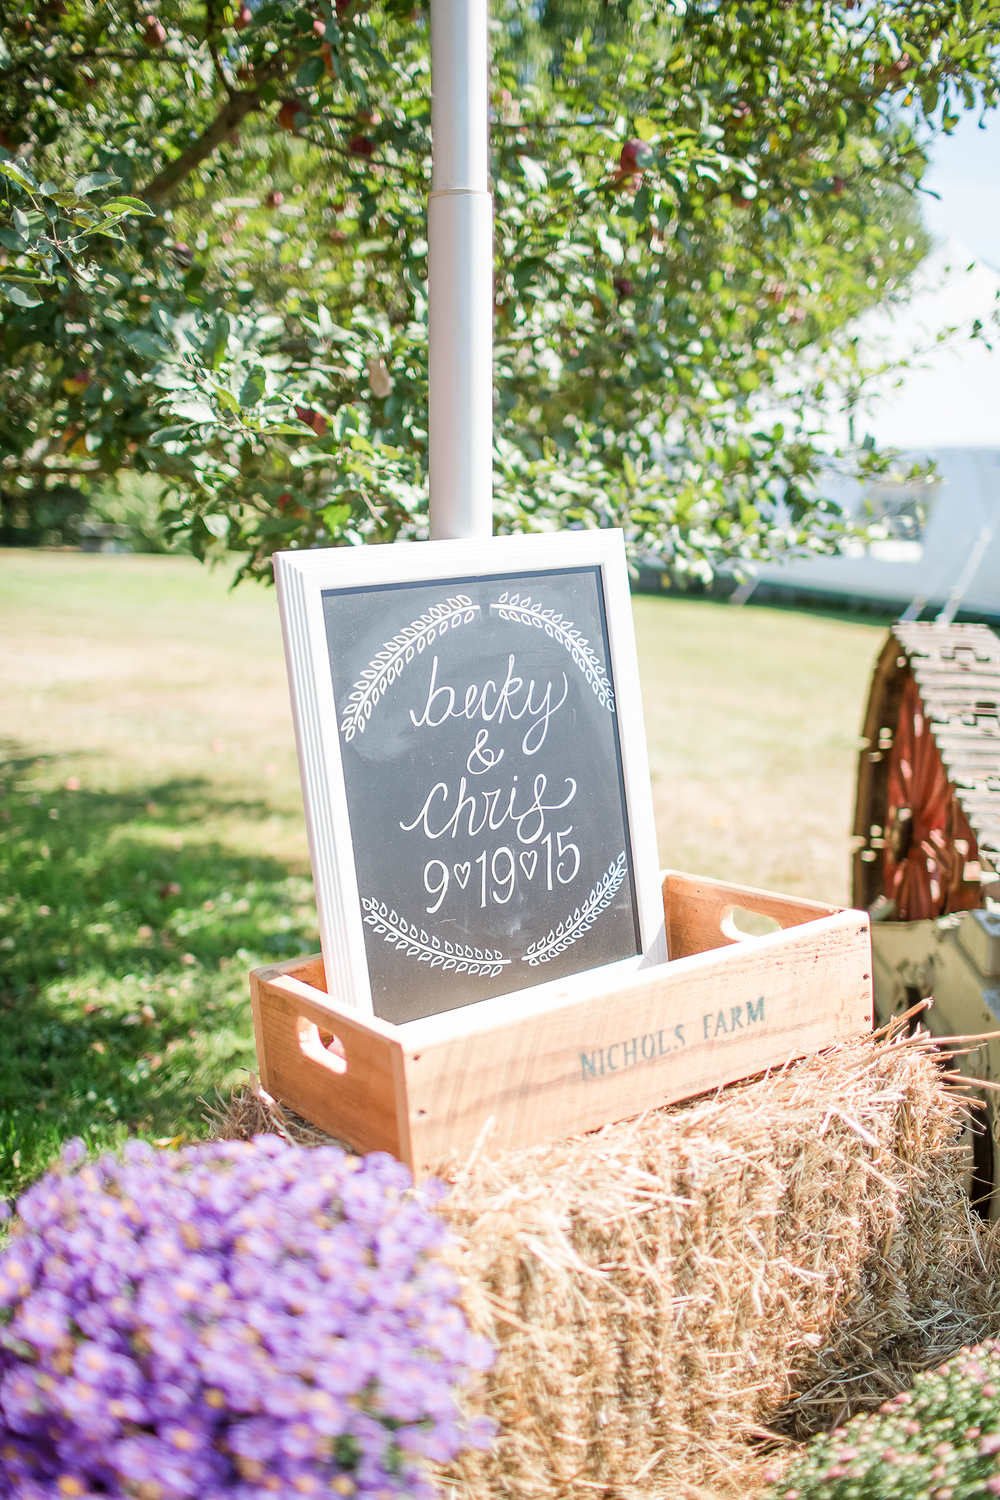 Farm Tractor Wedding Prop | American Flag | Wedding Farm Decor | Chalk Board Wedding Sign | Amy Brown Photography